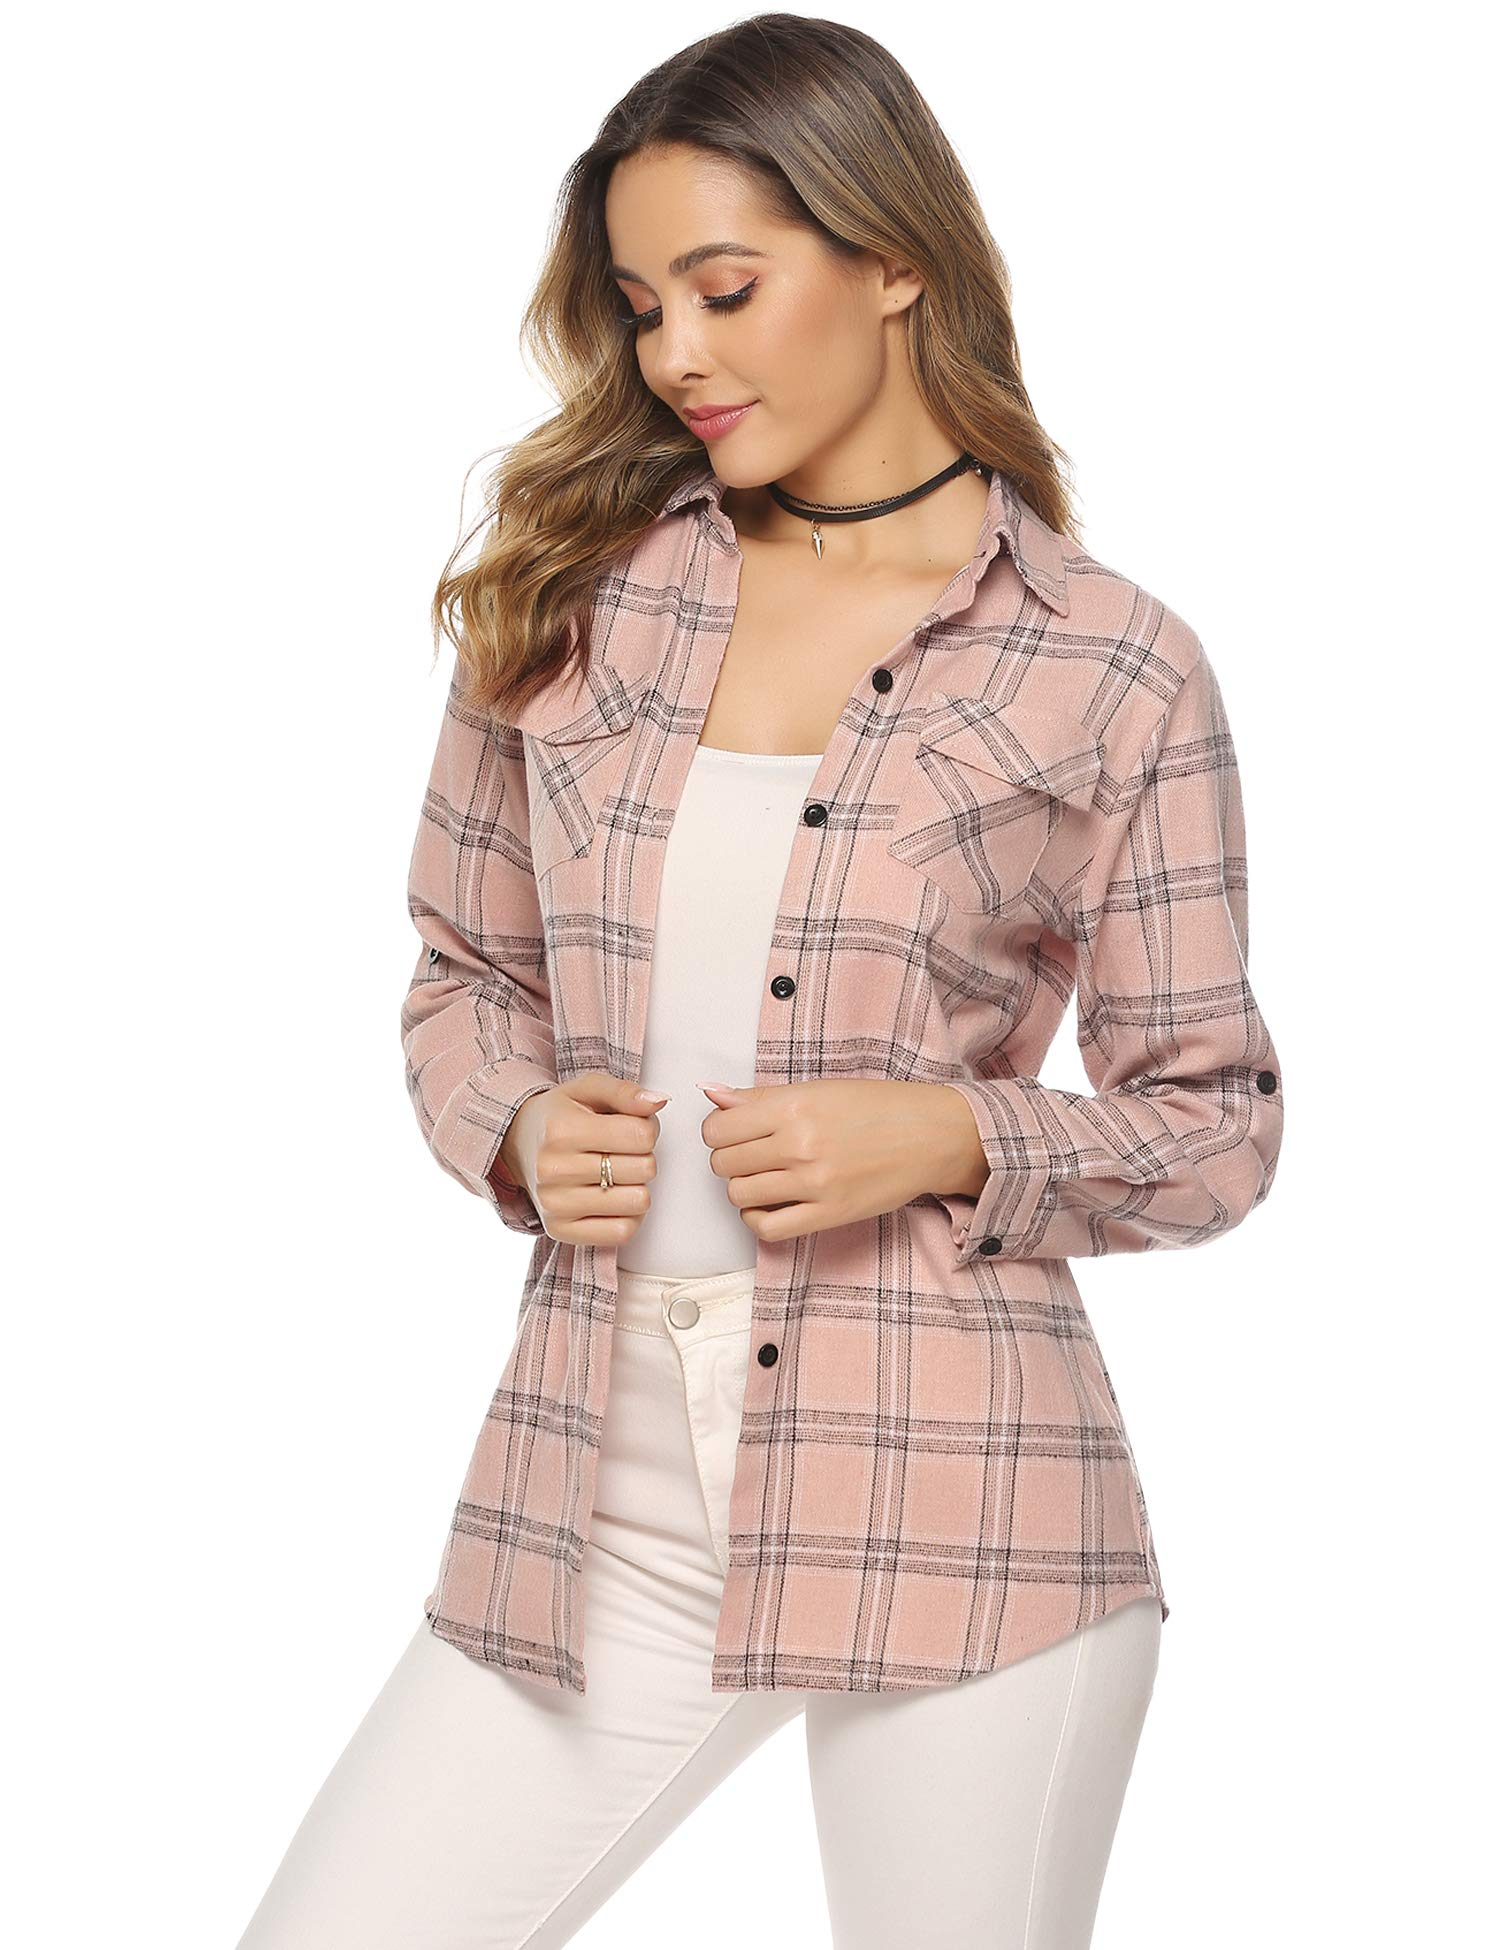 Women's plaid shirts